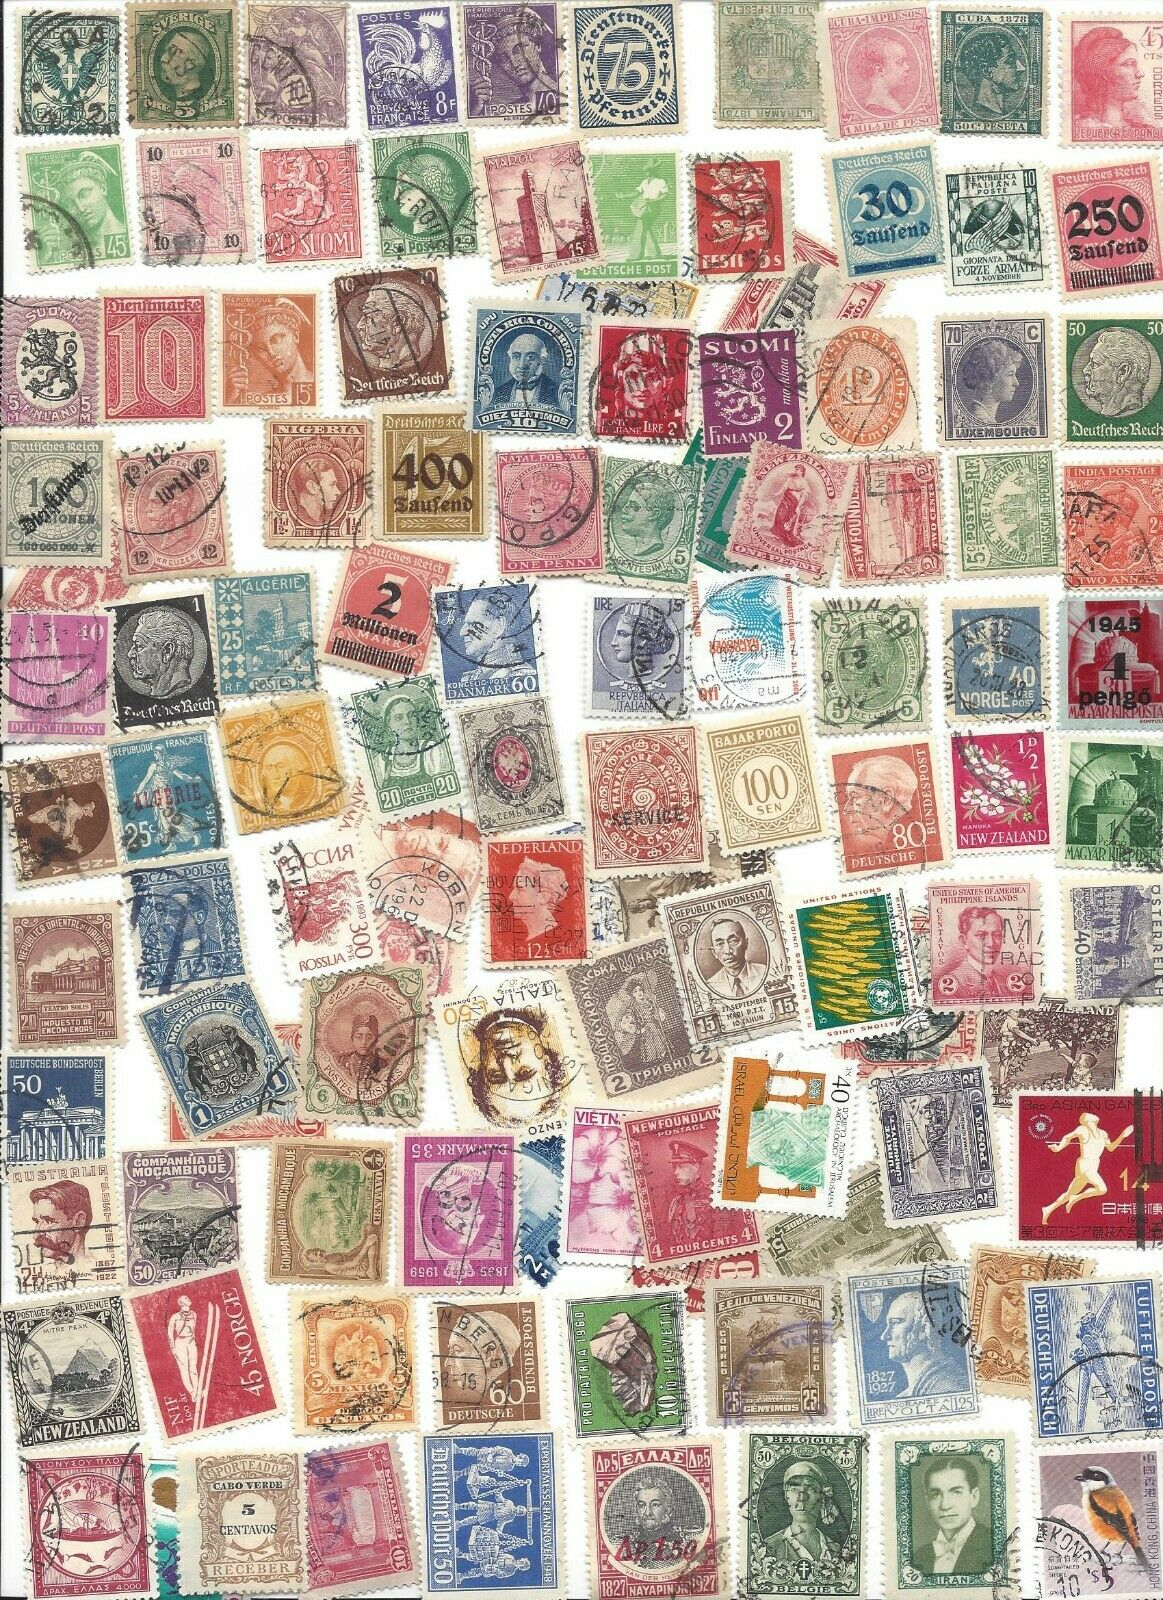 100 Different Cancelled Worldwide Stamps8/19CC - $2.25